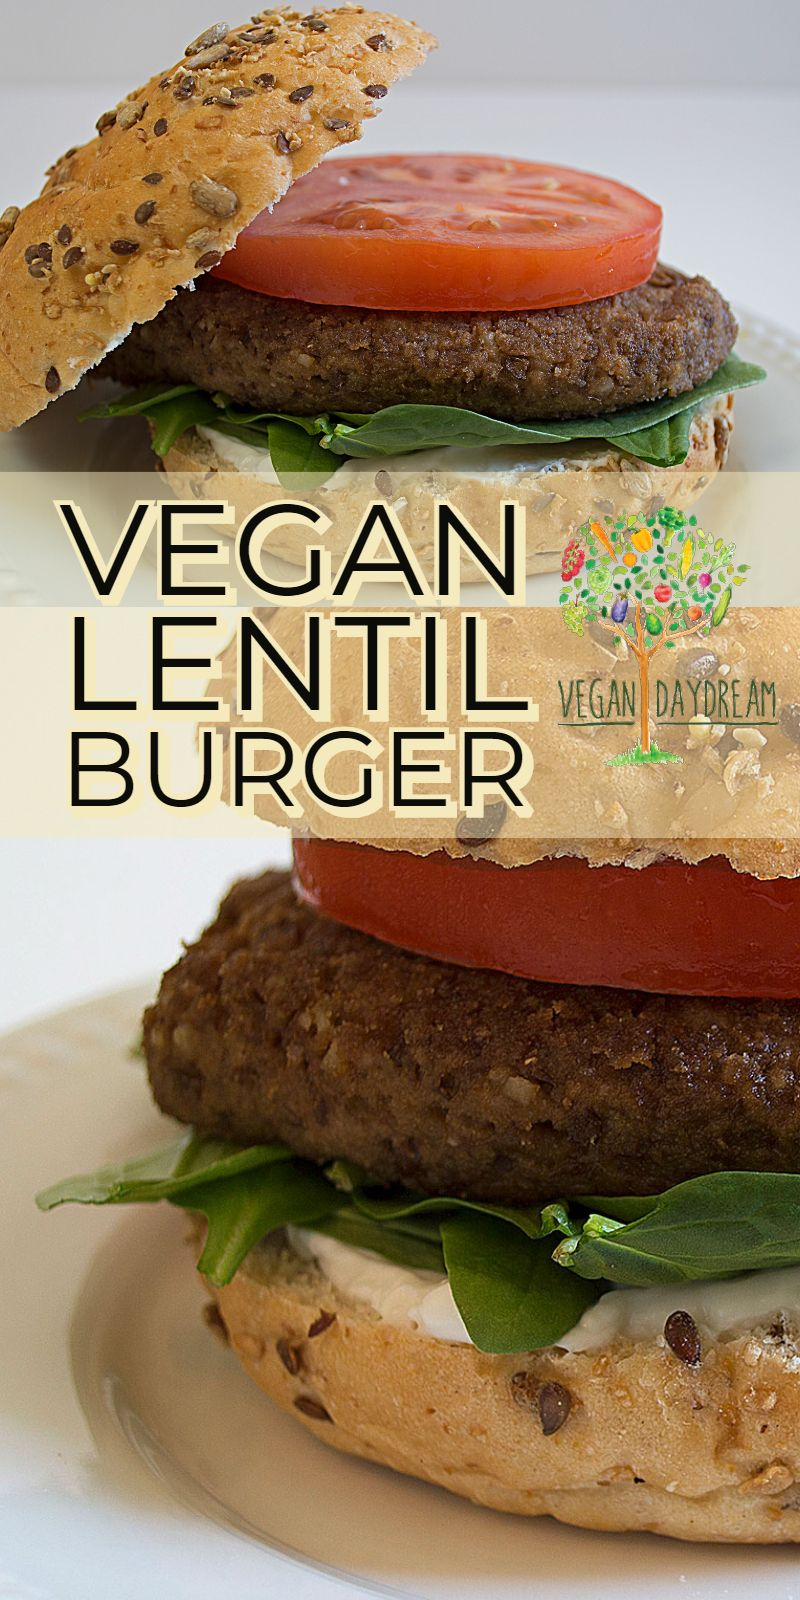 These Easy Lentil Burgers Are A Great Way To Enjoy A Sunny Day In The Back Yard Or A Family Nigh Lentil Burger Recipe Vegan Vegan Lentil Burger Lentil Burgers